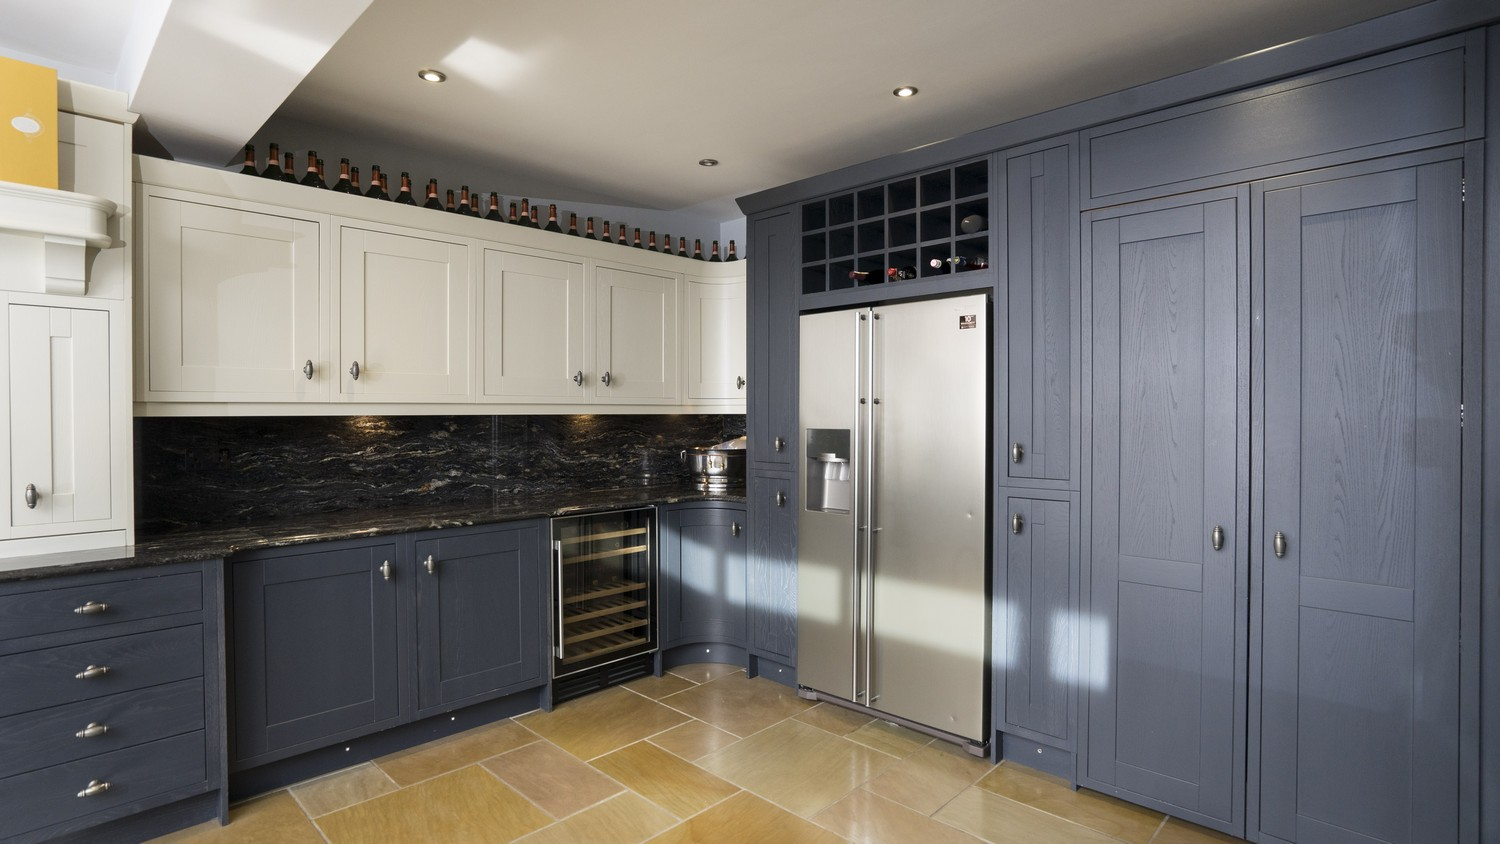 Timber inframe kitchen showing fridge/freezer and tall larder style cupboards. All units have been finished with a painted finish in midnight blue and Ivory.